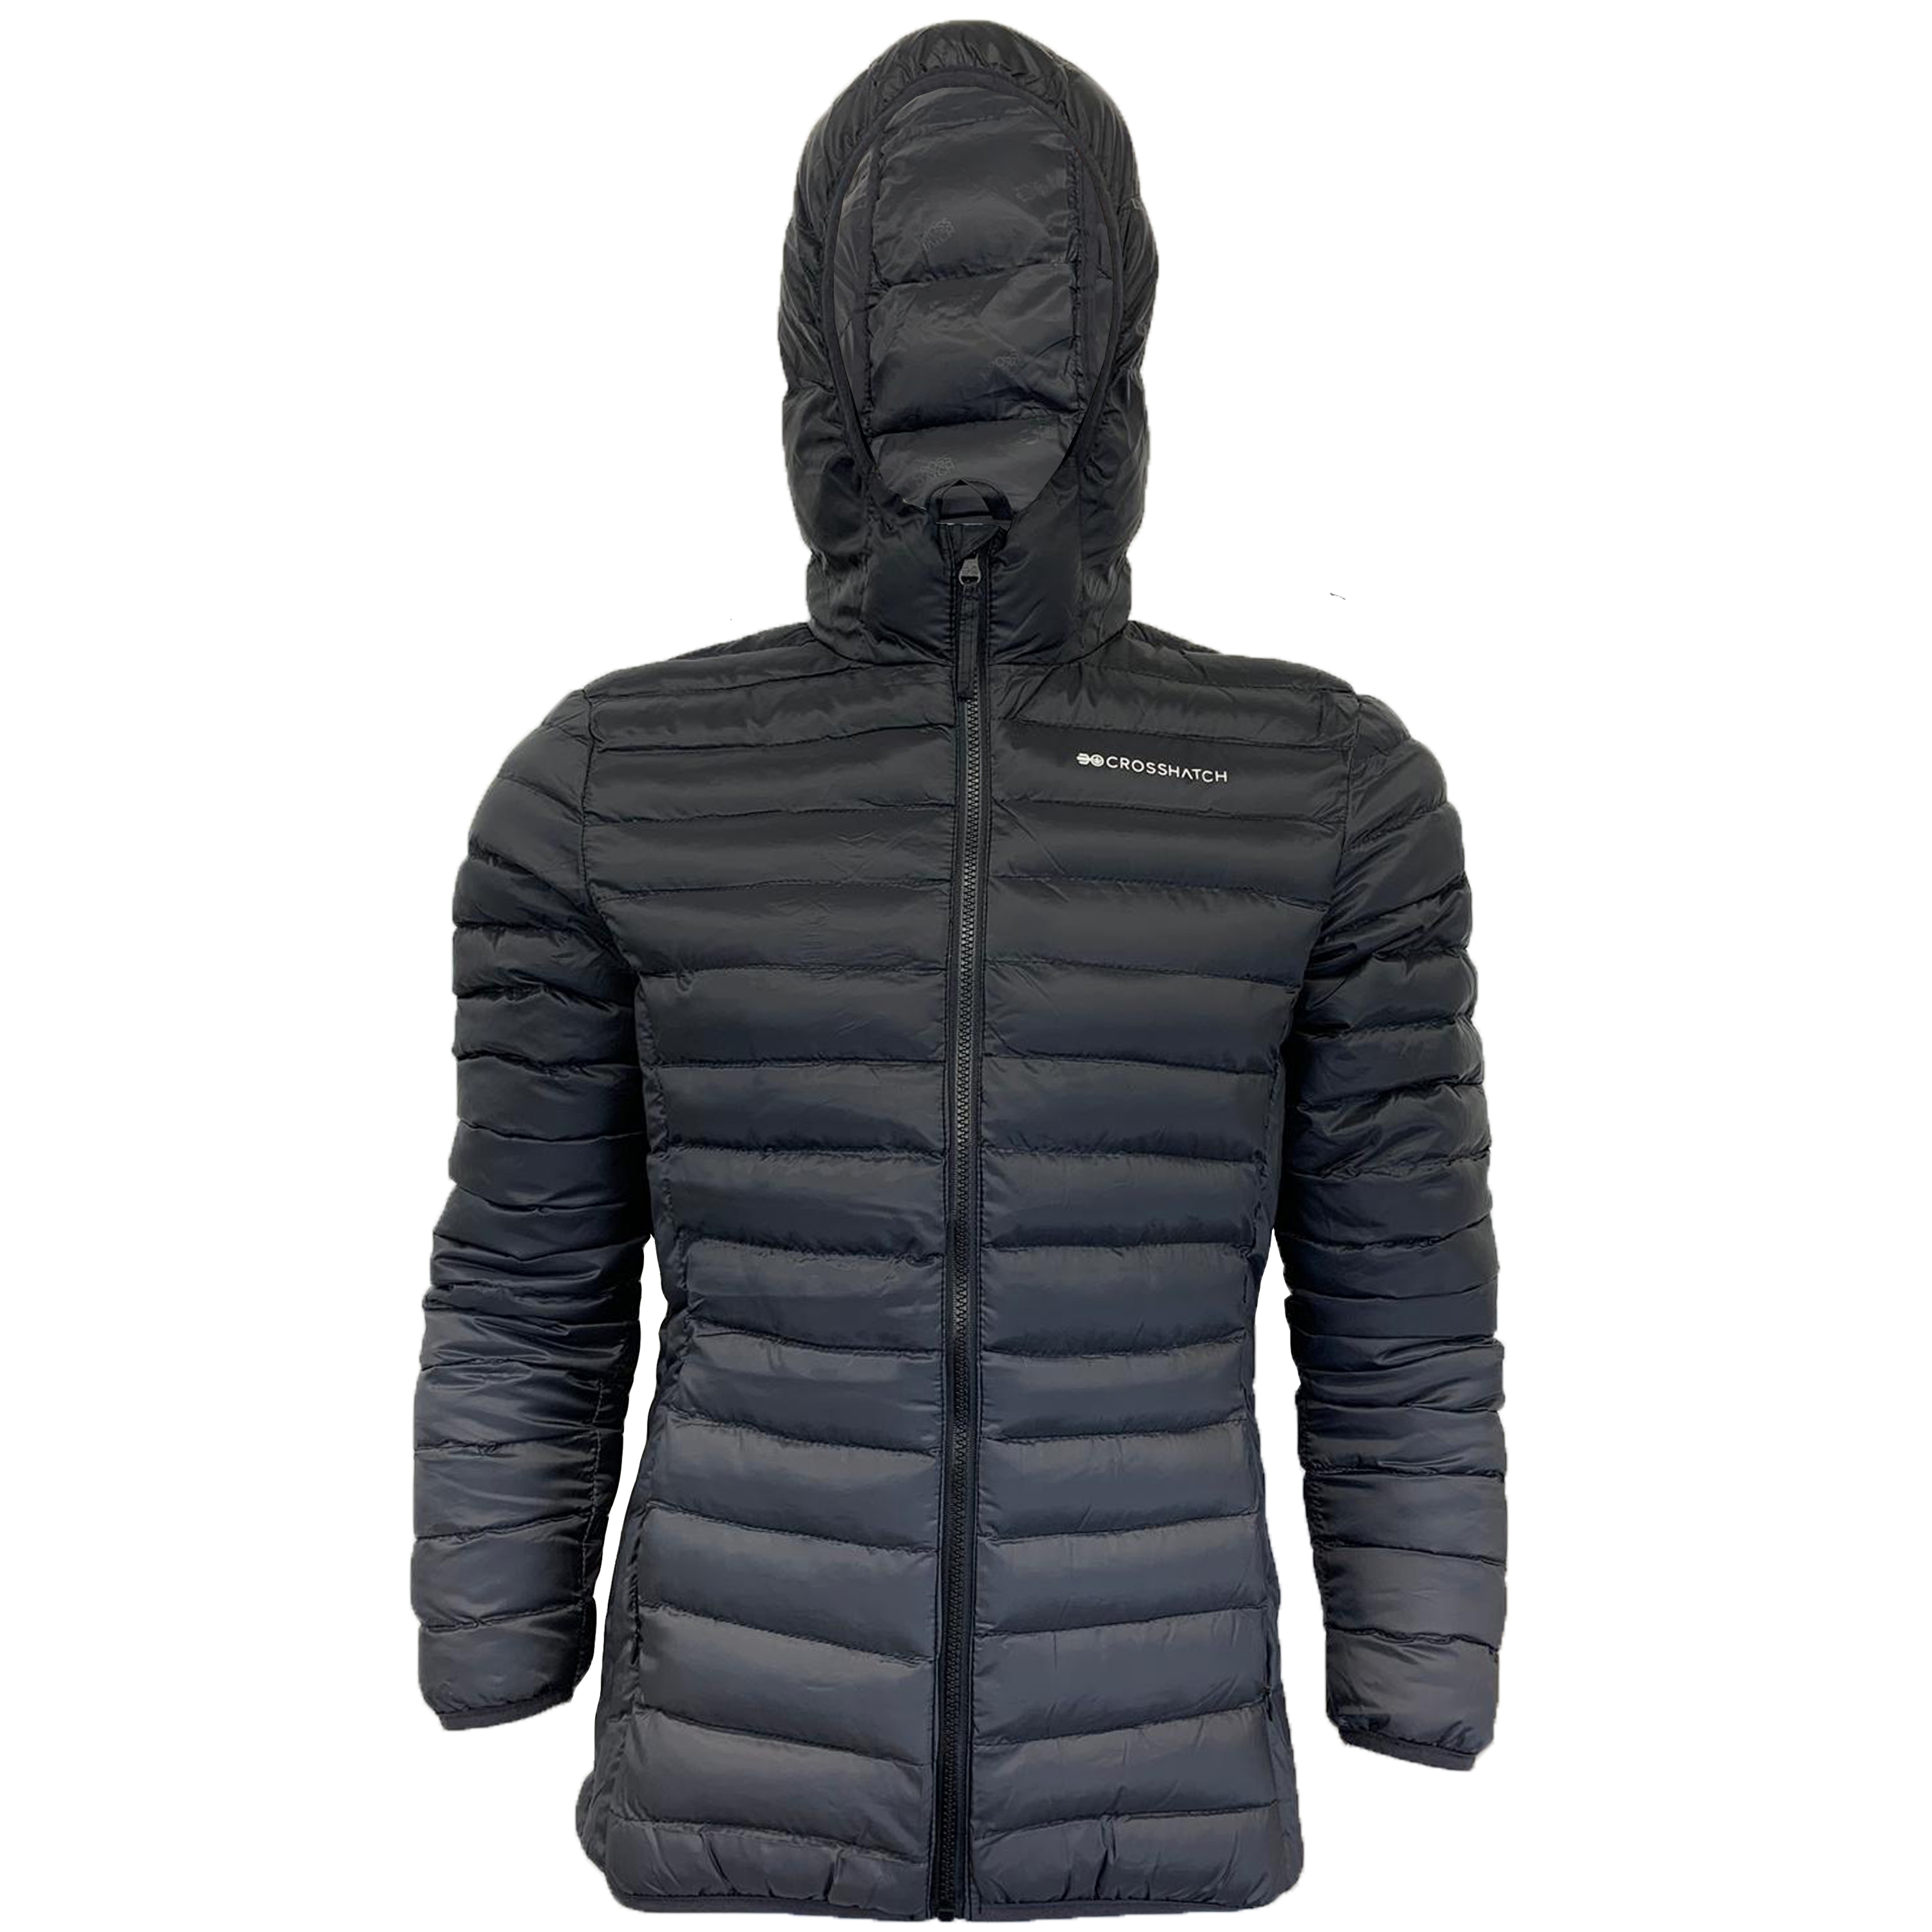 Mens-Jacket-Crosshatch-Hooded-Padded-Quilted-Two-Tone-FADEDOWN-Lined-Winter-New thumbnail 3